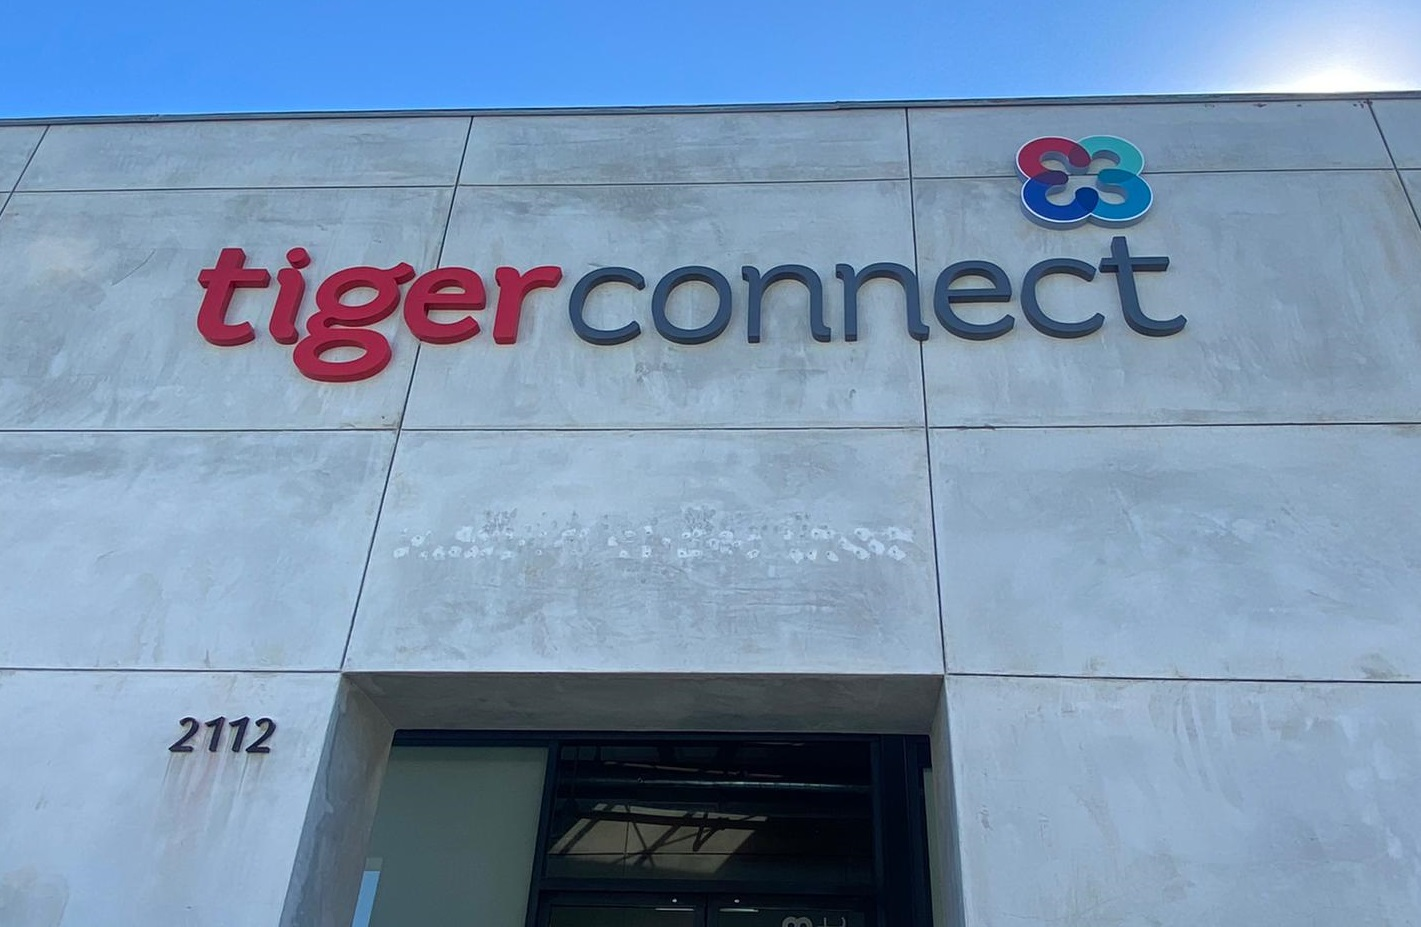 This dimensional letter sign is part of our business sign package for TigerConnect. With this exterior sign, their Santa Monica office will stand out.